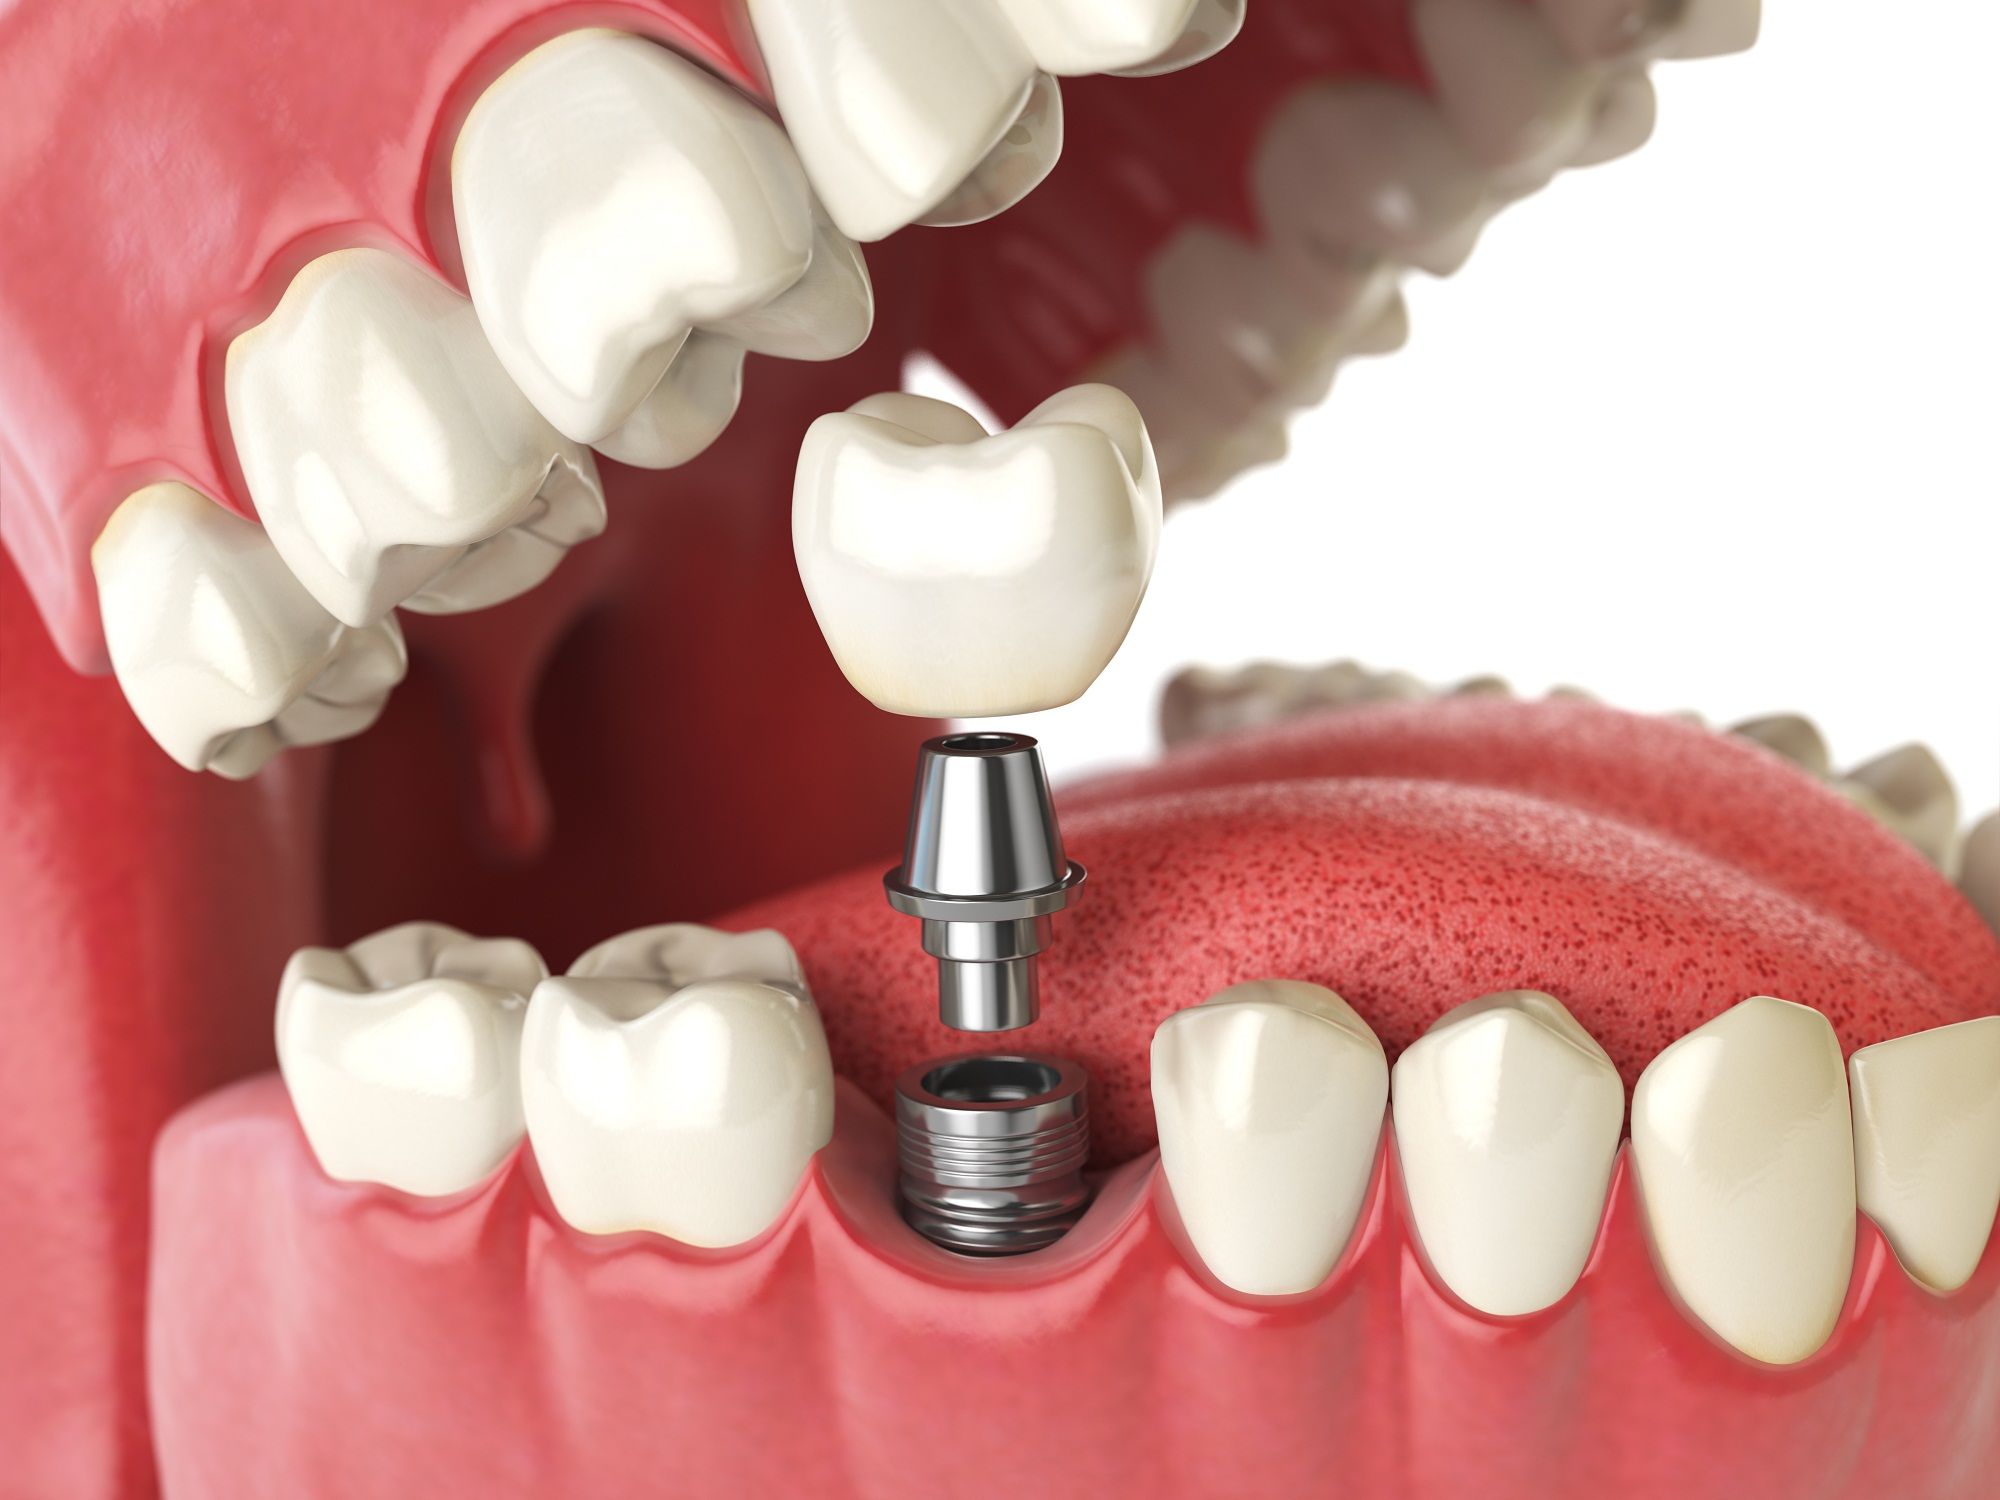 Dental Implants Manchester – Does The Procedure Hurt